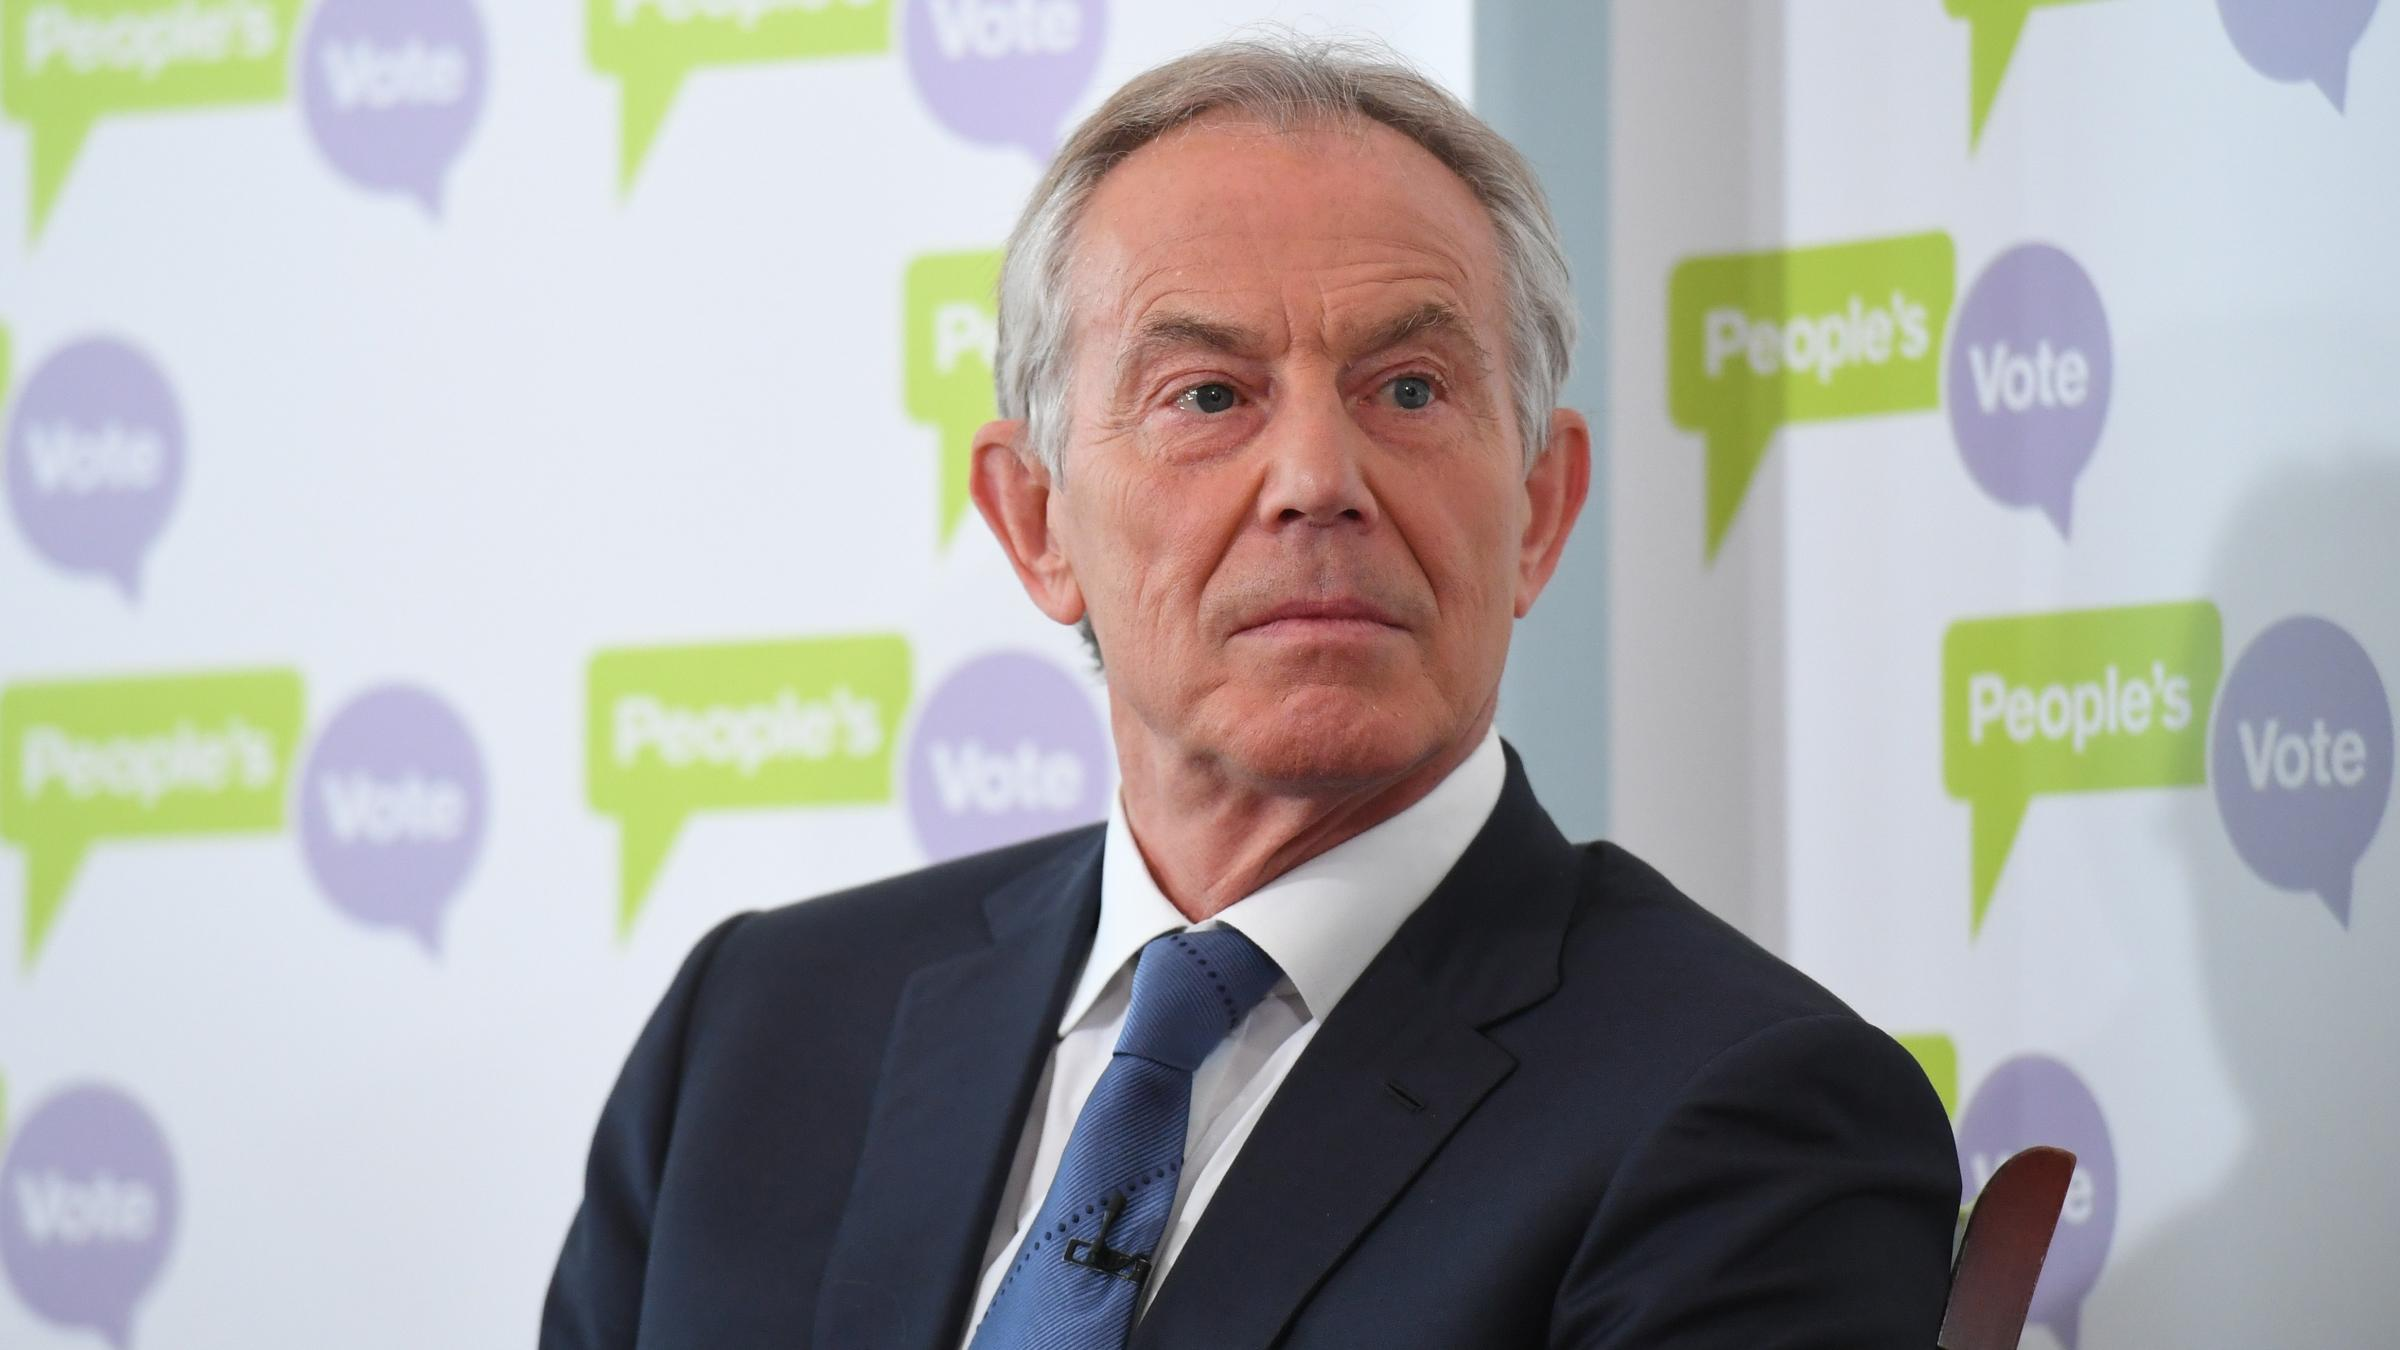 Blair warns of 'devastating' impact of no-deal Brexit on NI peace process